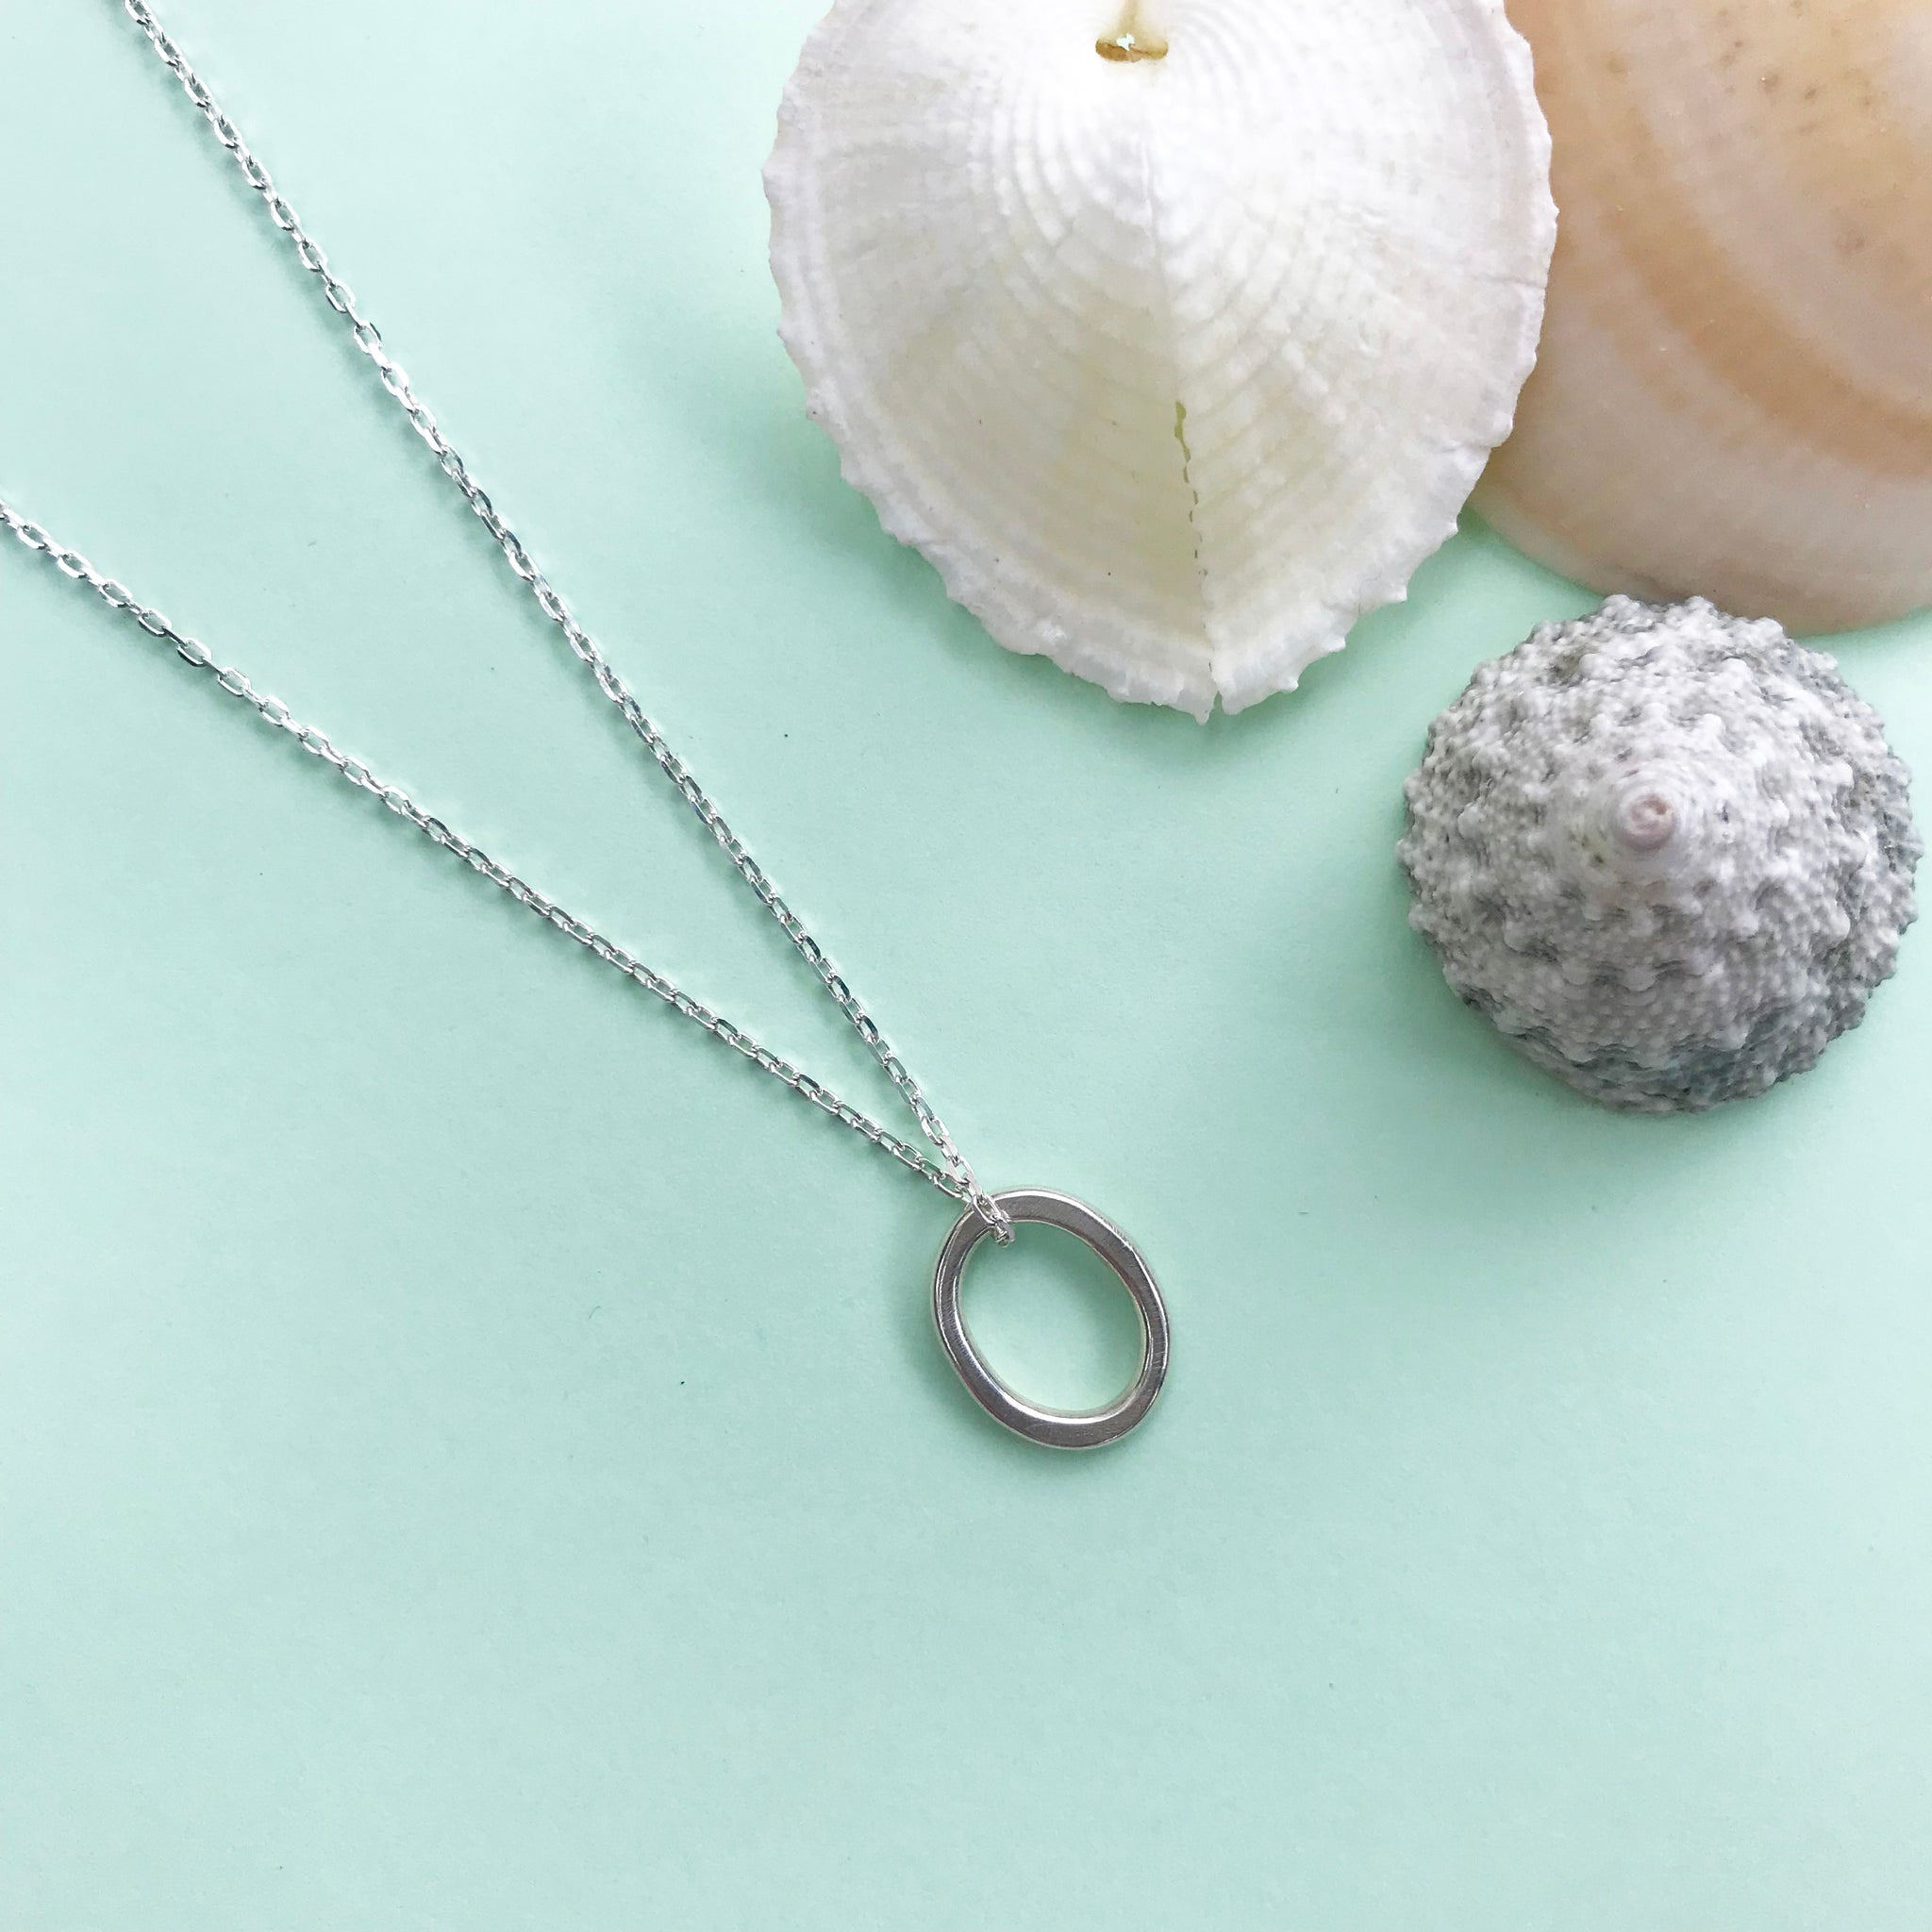 sterling silver pebble pendant with polished finish and choice of chain lengths, made by Ami of AB Jewellery, Goldsmith